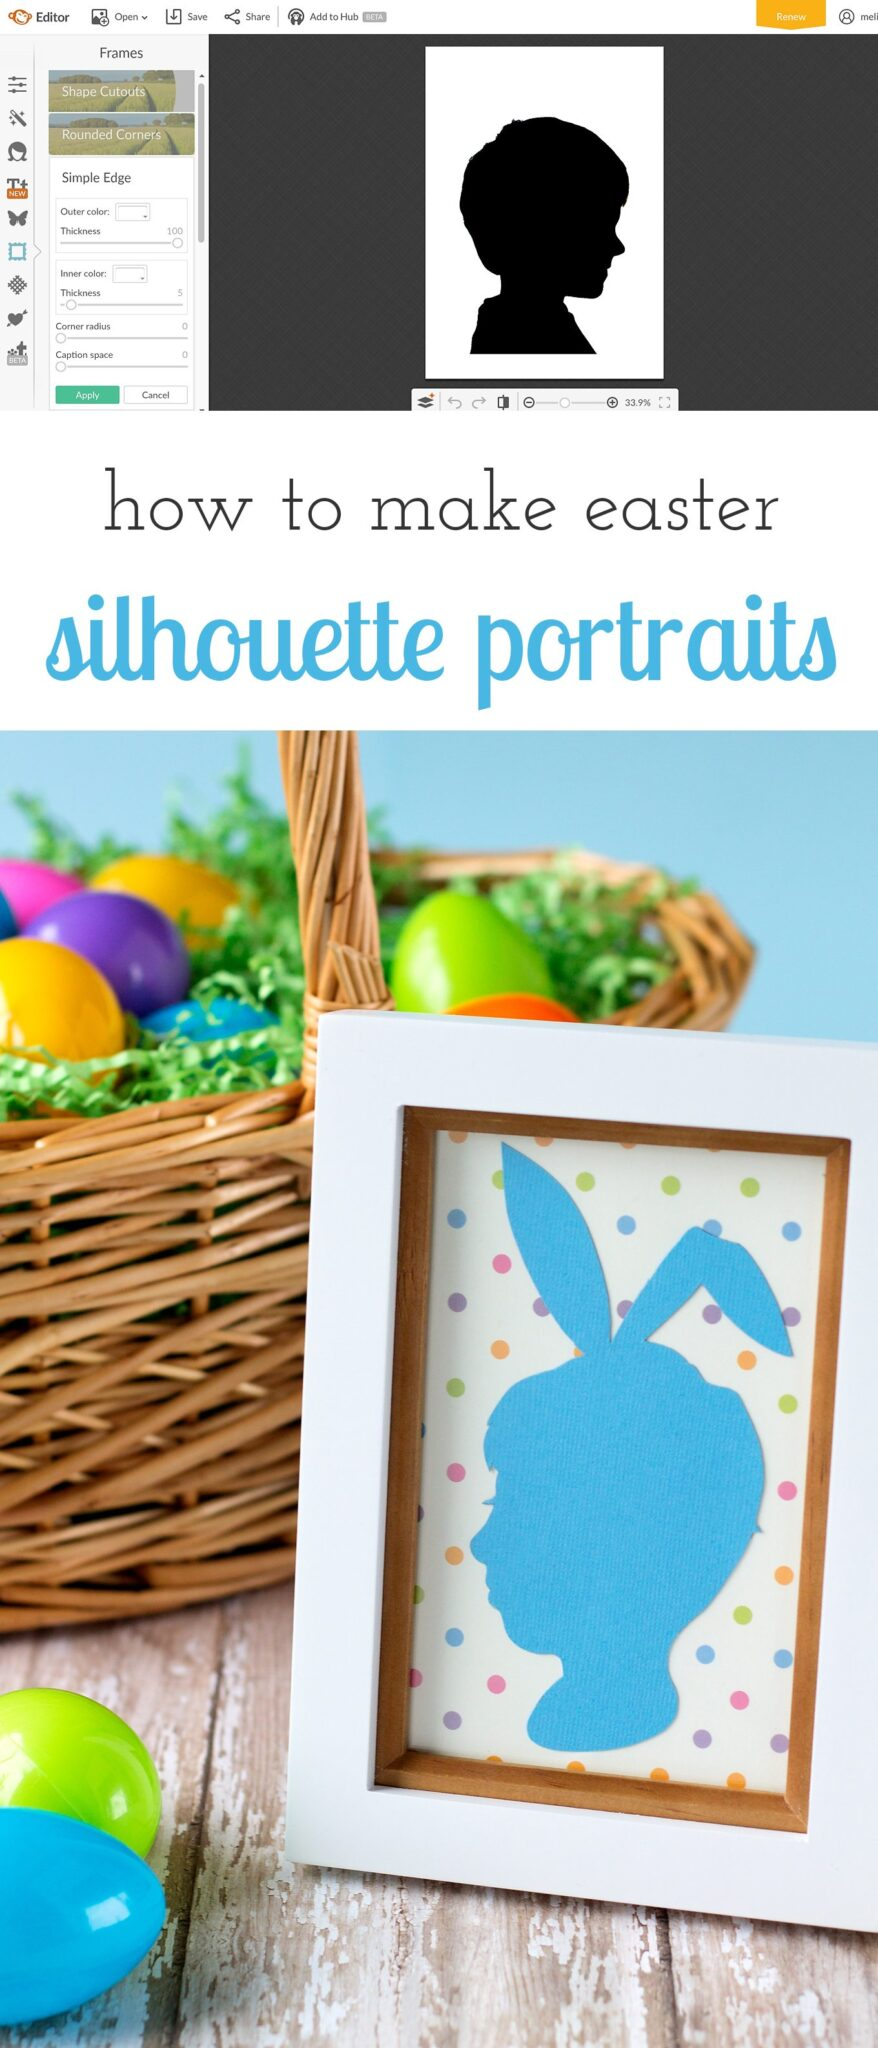 How to make Easter Silhouette Portraits using PicMonkey or Photoshop. This keepsake craft is perfect for kids of all ages!